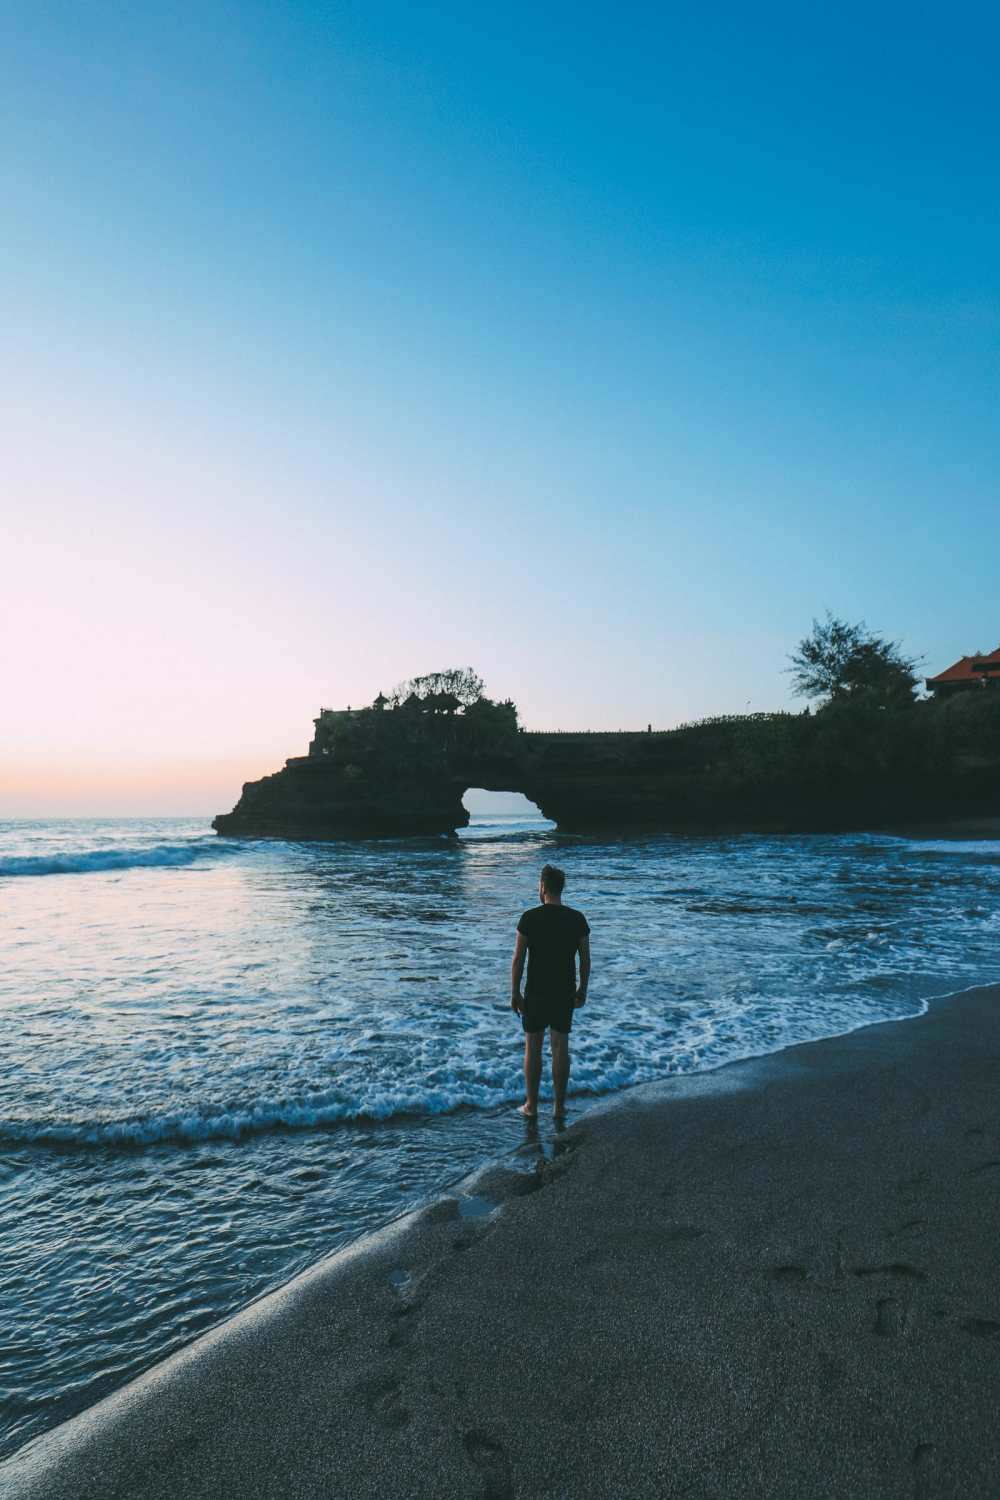 Bali Travel Diary - Ubud Palace, Uluwatu and Tanah Lot (39)